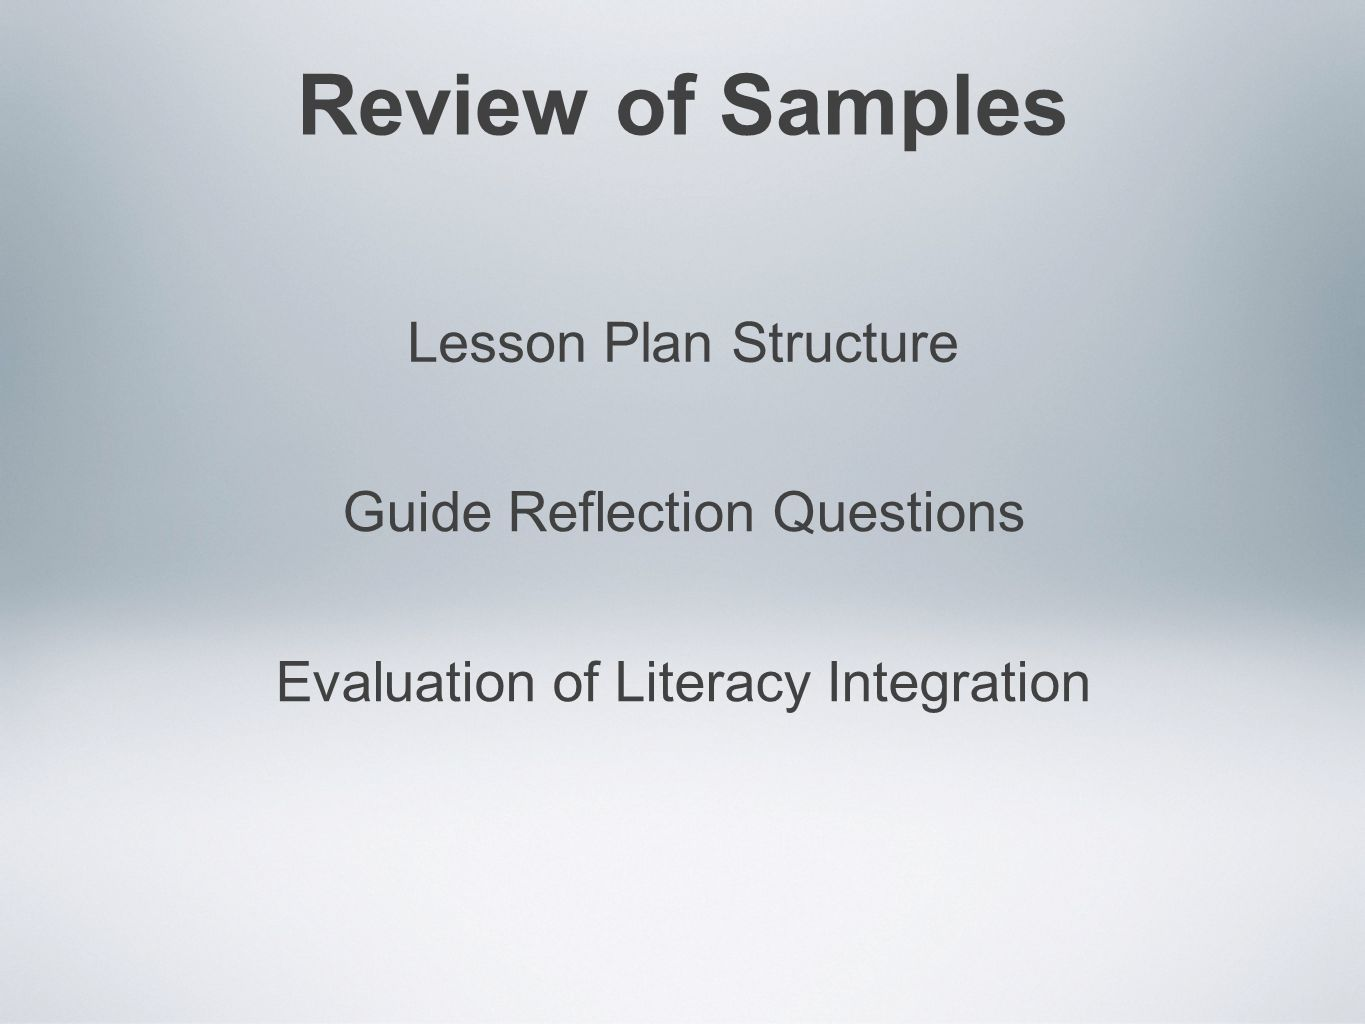 Review of Samples Lesson Plan Structure Guide Reflection Questions Evaluation of Literacy Integration